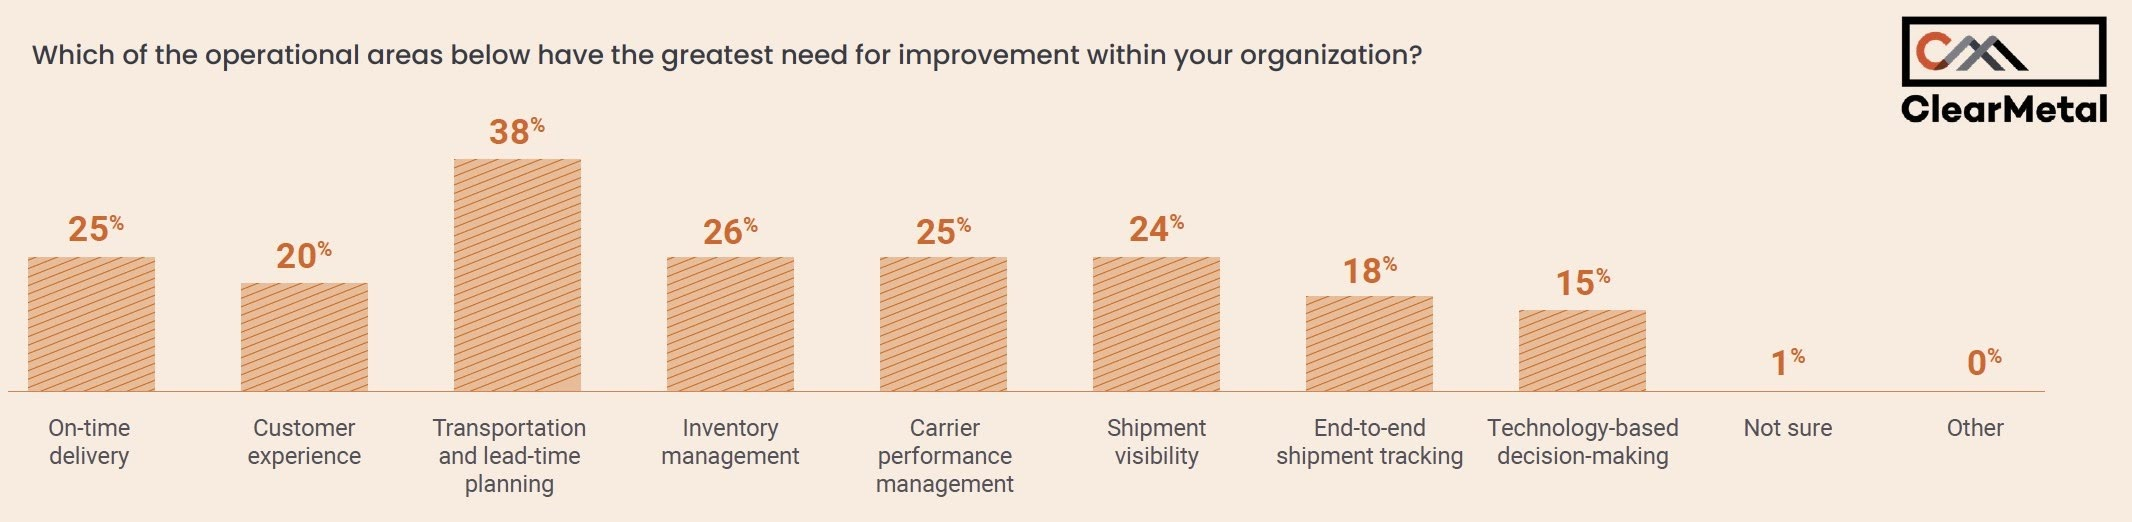 Which of the operational areas below have the greatest need for improvement within your organization?